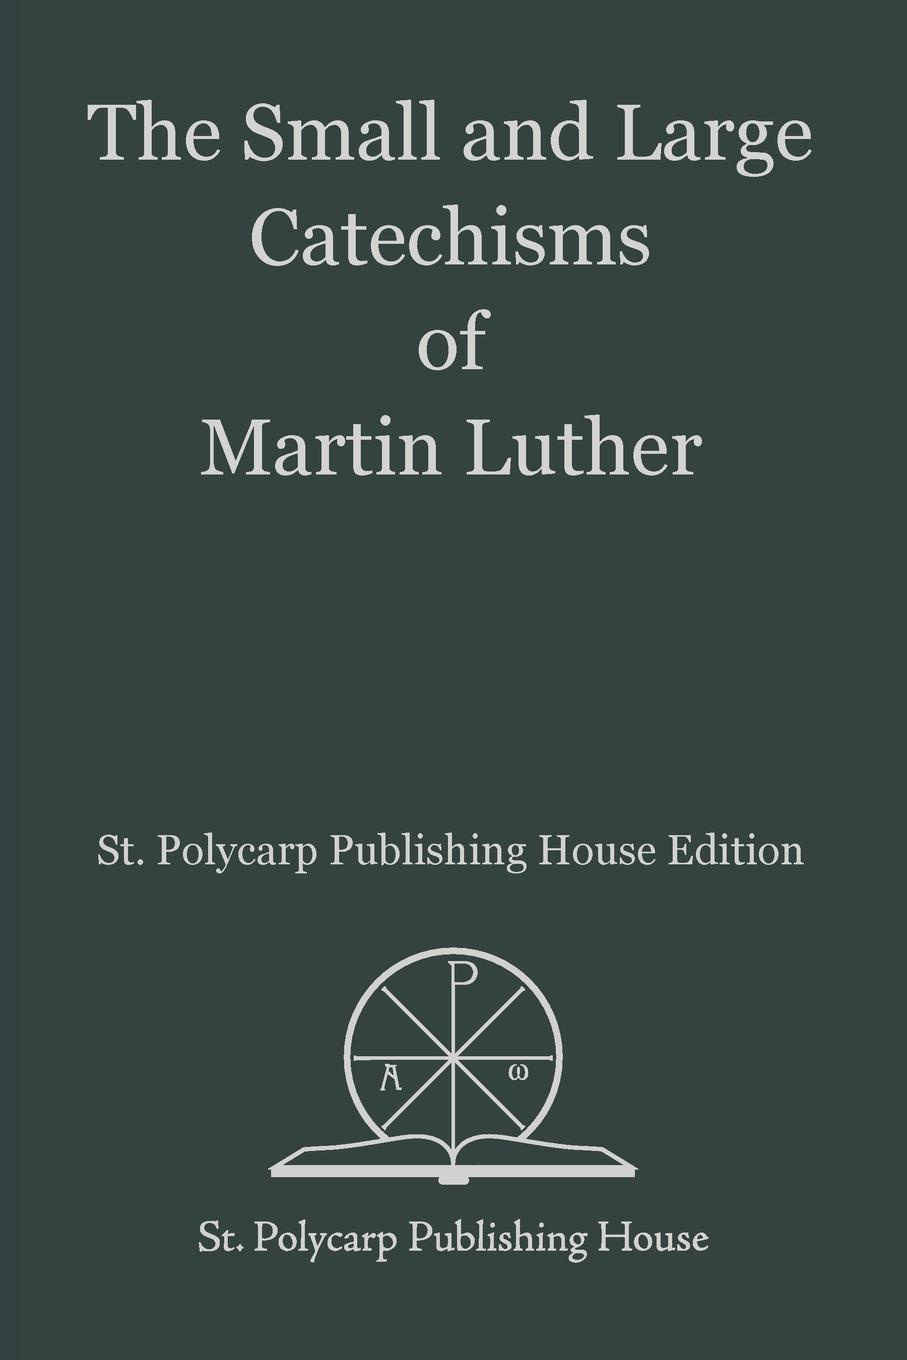 Martin Luther The Small and Large Catechisms of Martin Luther